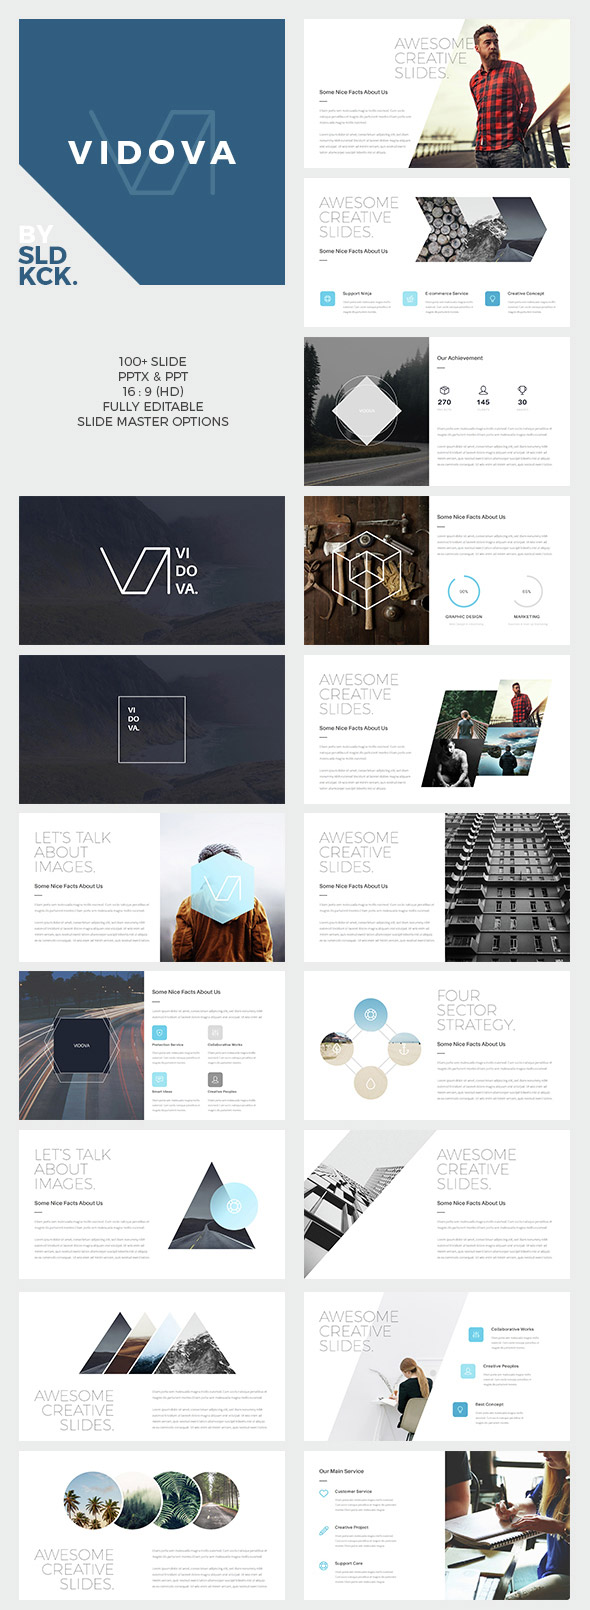 20 ppt templates for simple modern powerpoint presentations vidova modern ppt presentation template design toneelgroepblik Choice Image